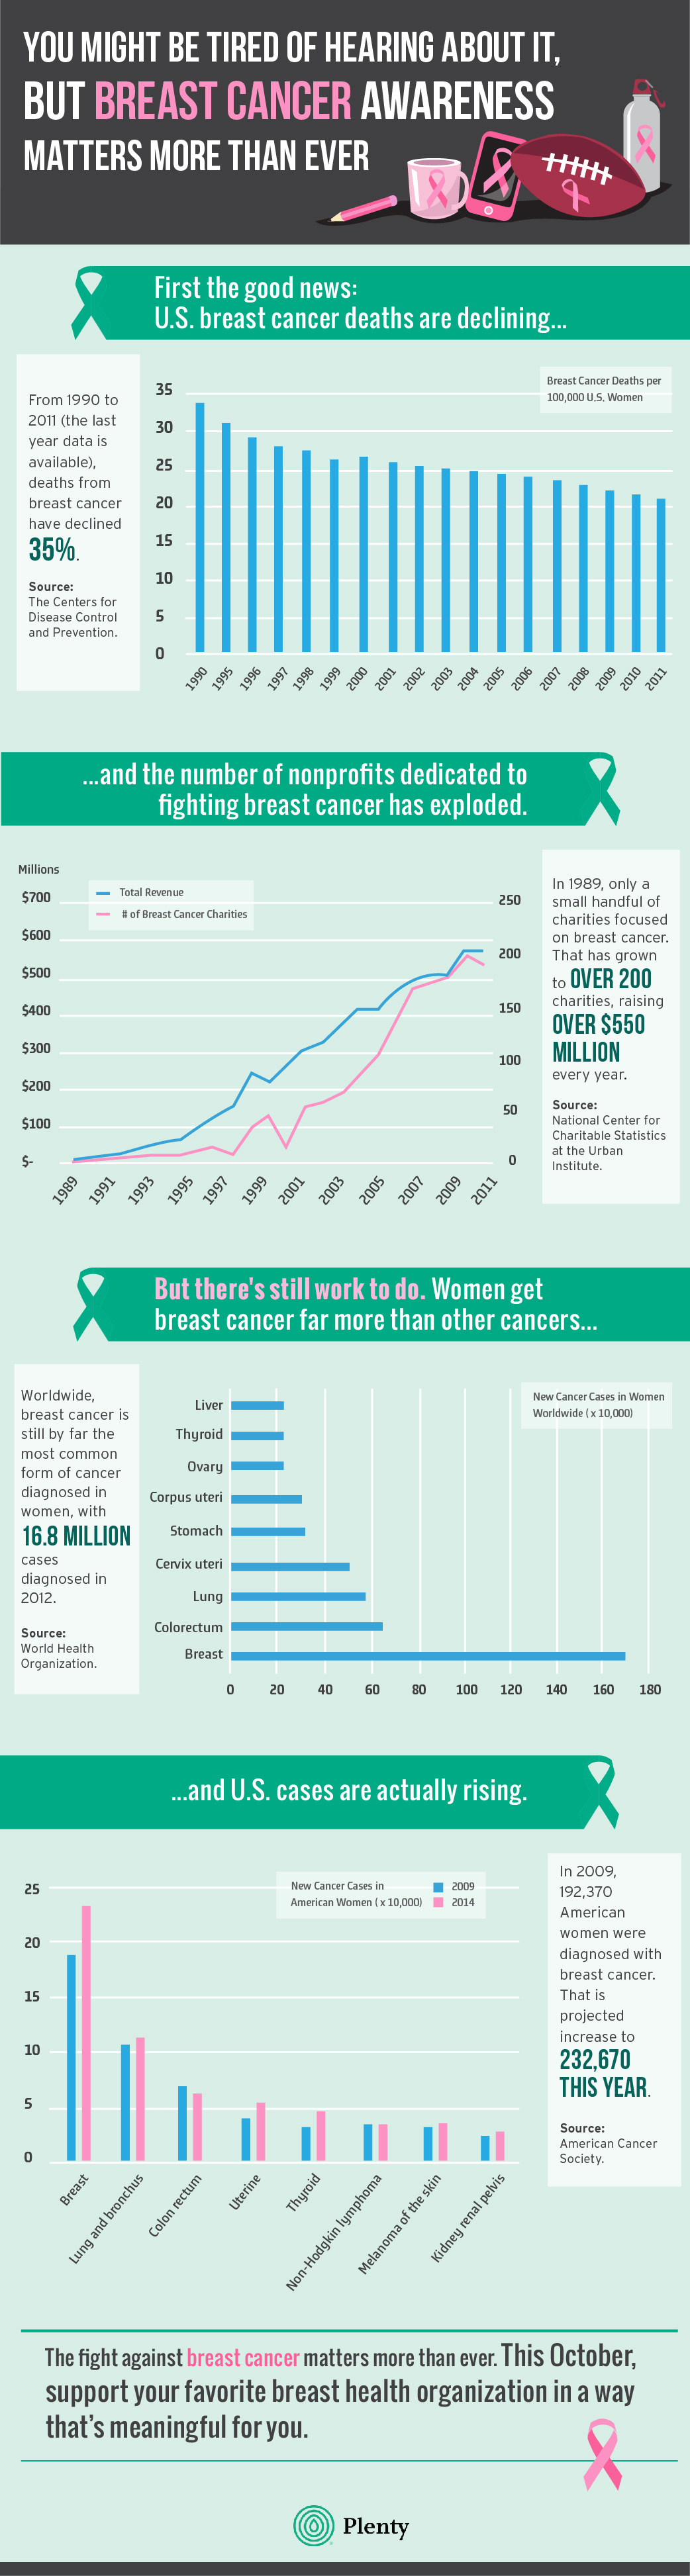 why-breast-cancer-awareness-matters-more-than-ever